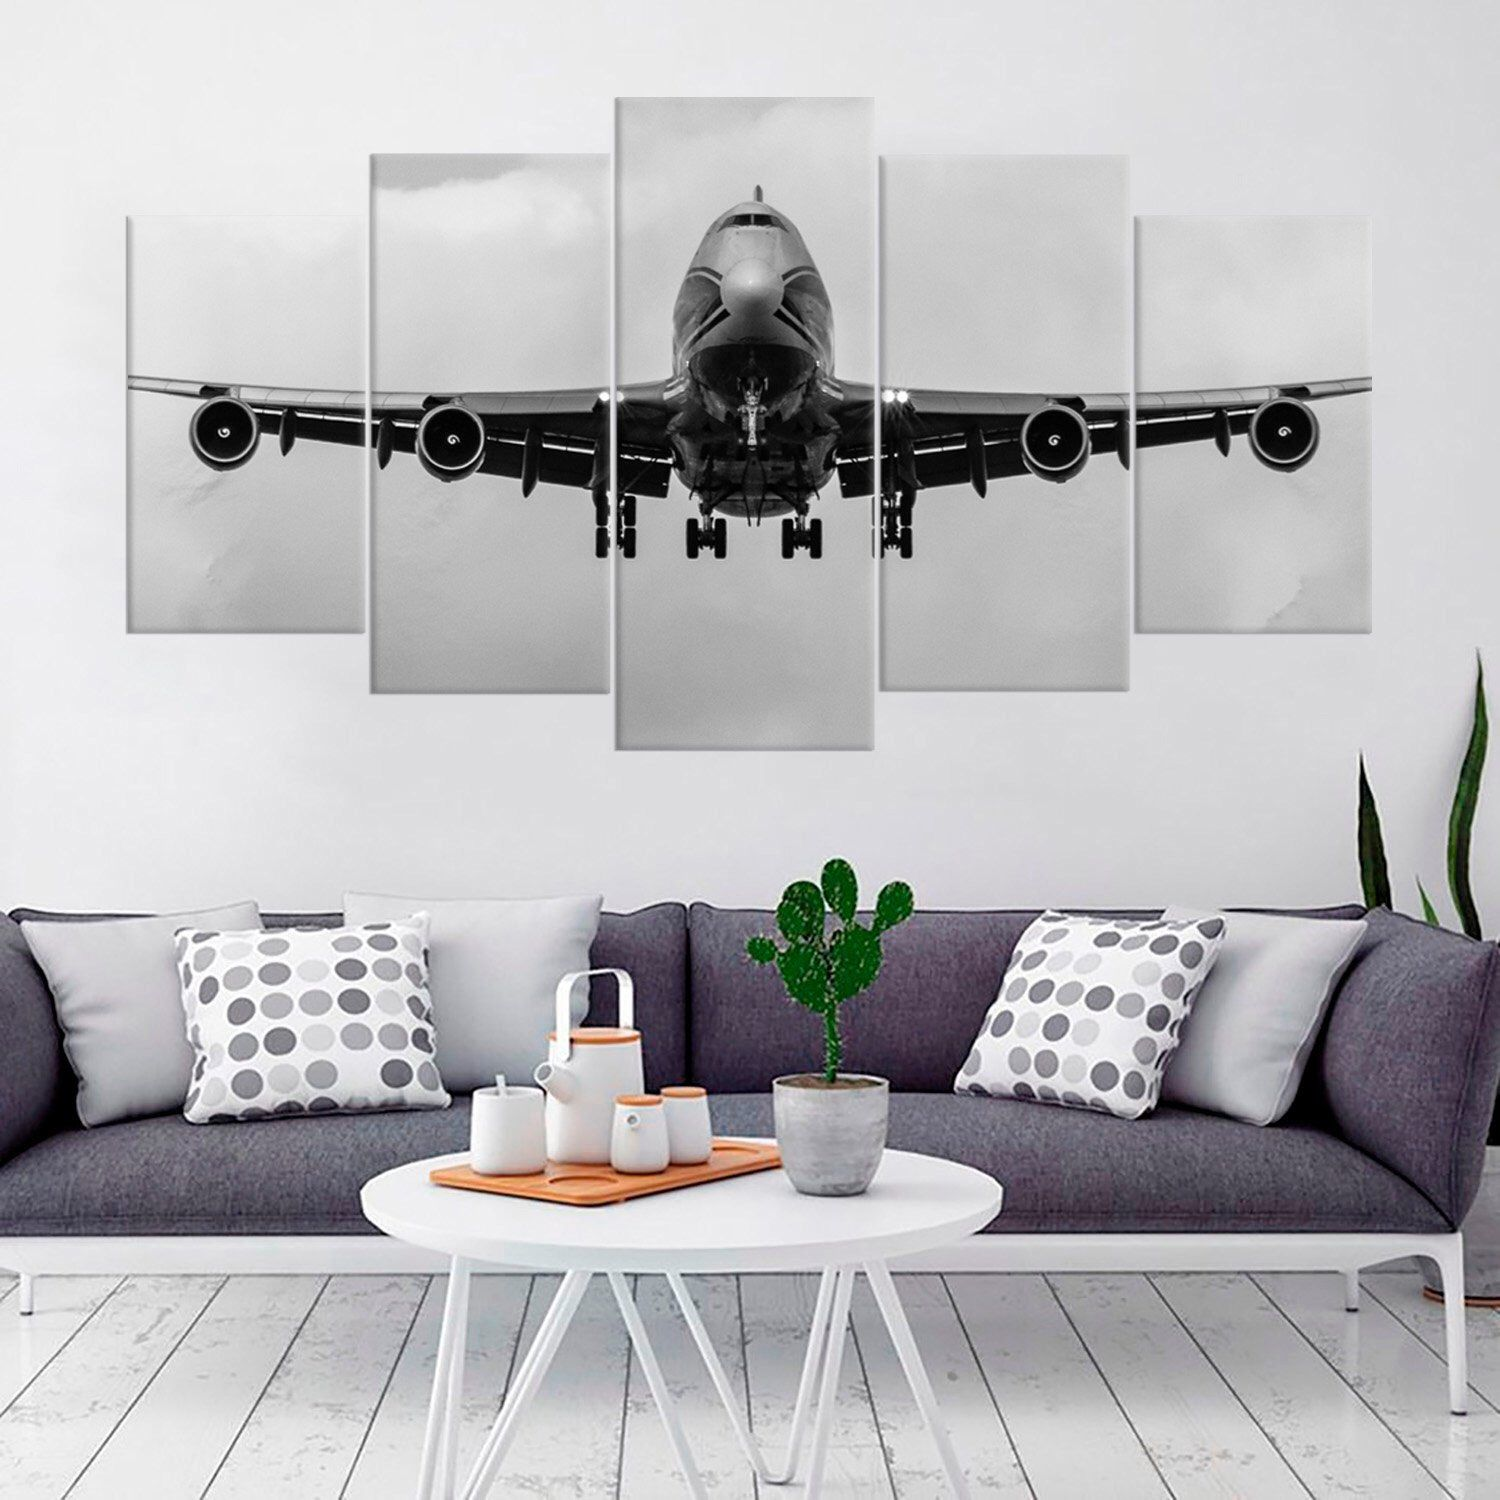 Boeing 747 Wall Art Print Airplane Picture Wall Art Airplane Etsy In 2020 Airplane Wall Art Wall Art Prints Picture Wall